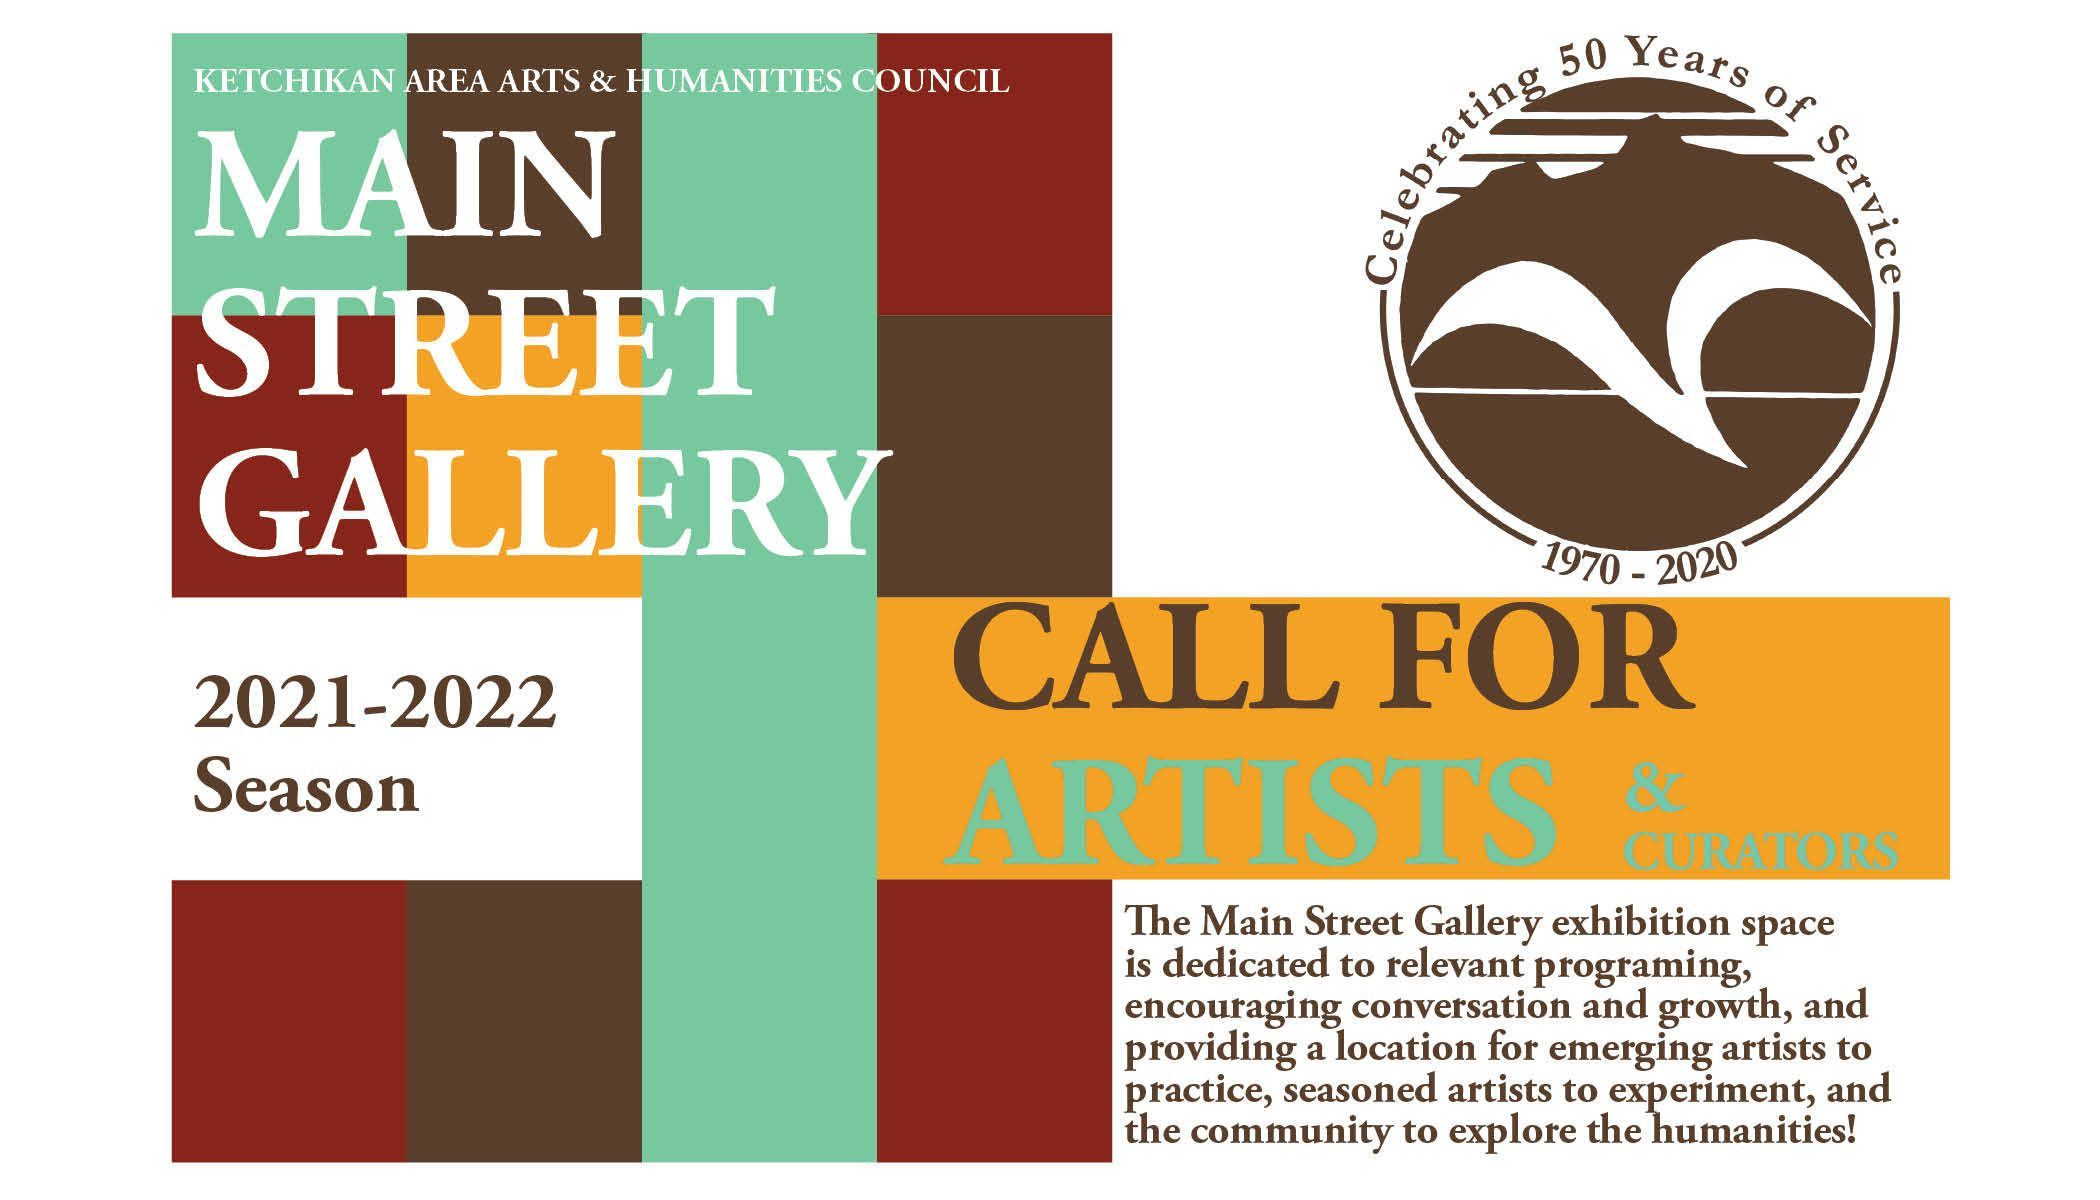 Main Street Gallery Call to Artists and Curators Deadline for Proposals